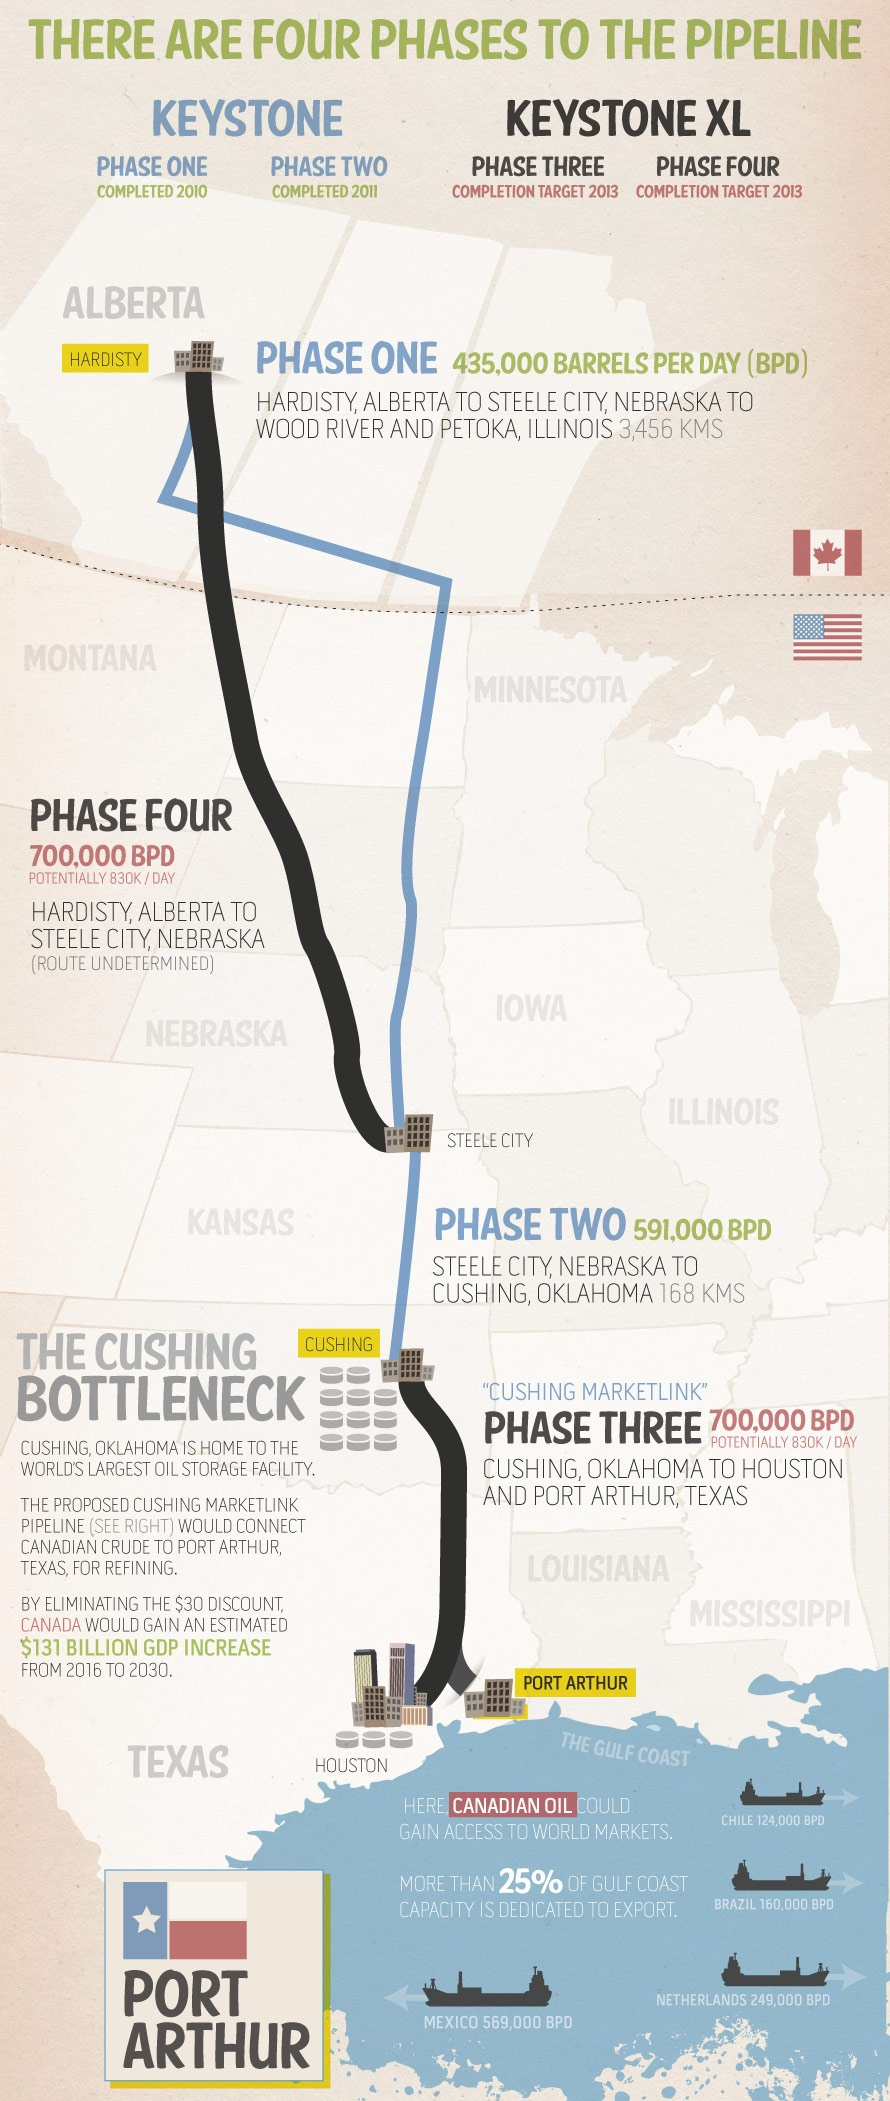 Keystone phases infographic